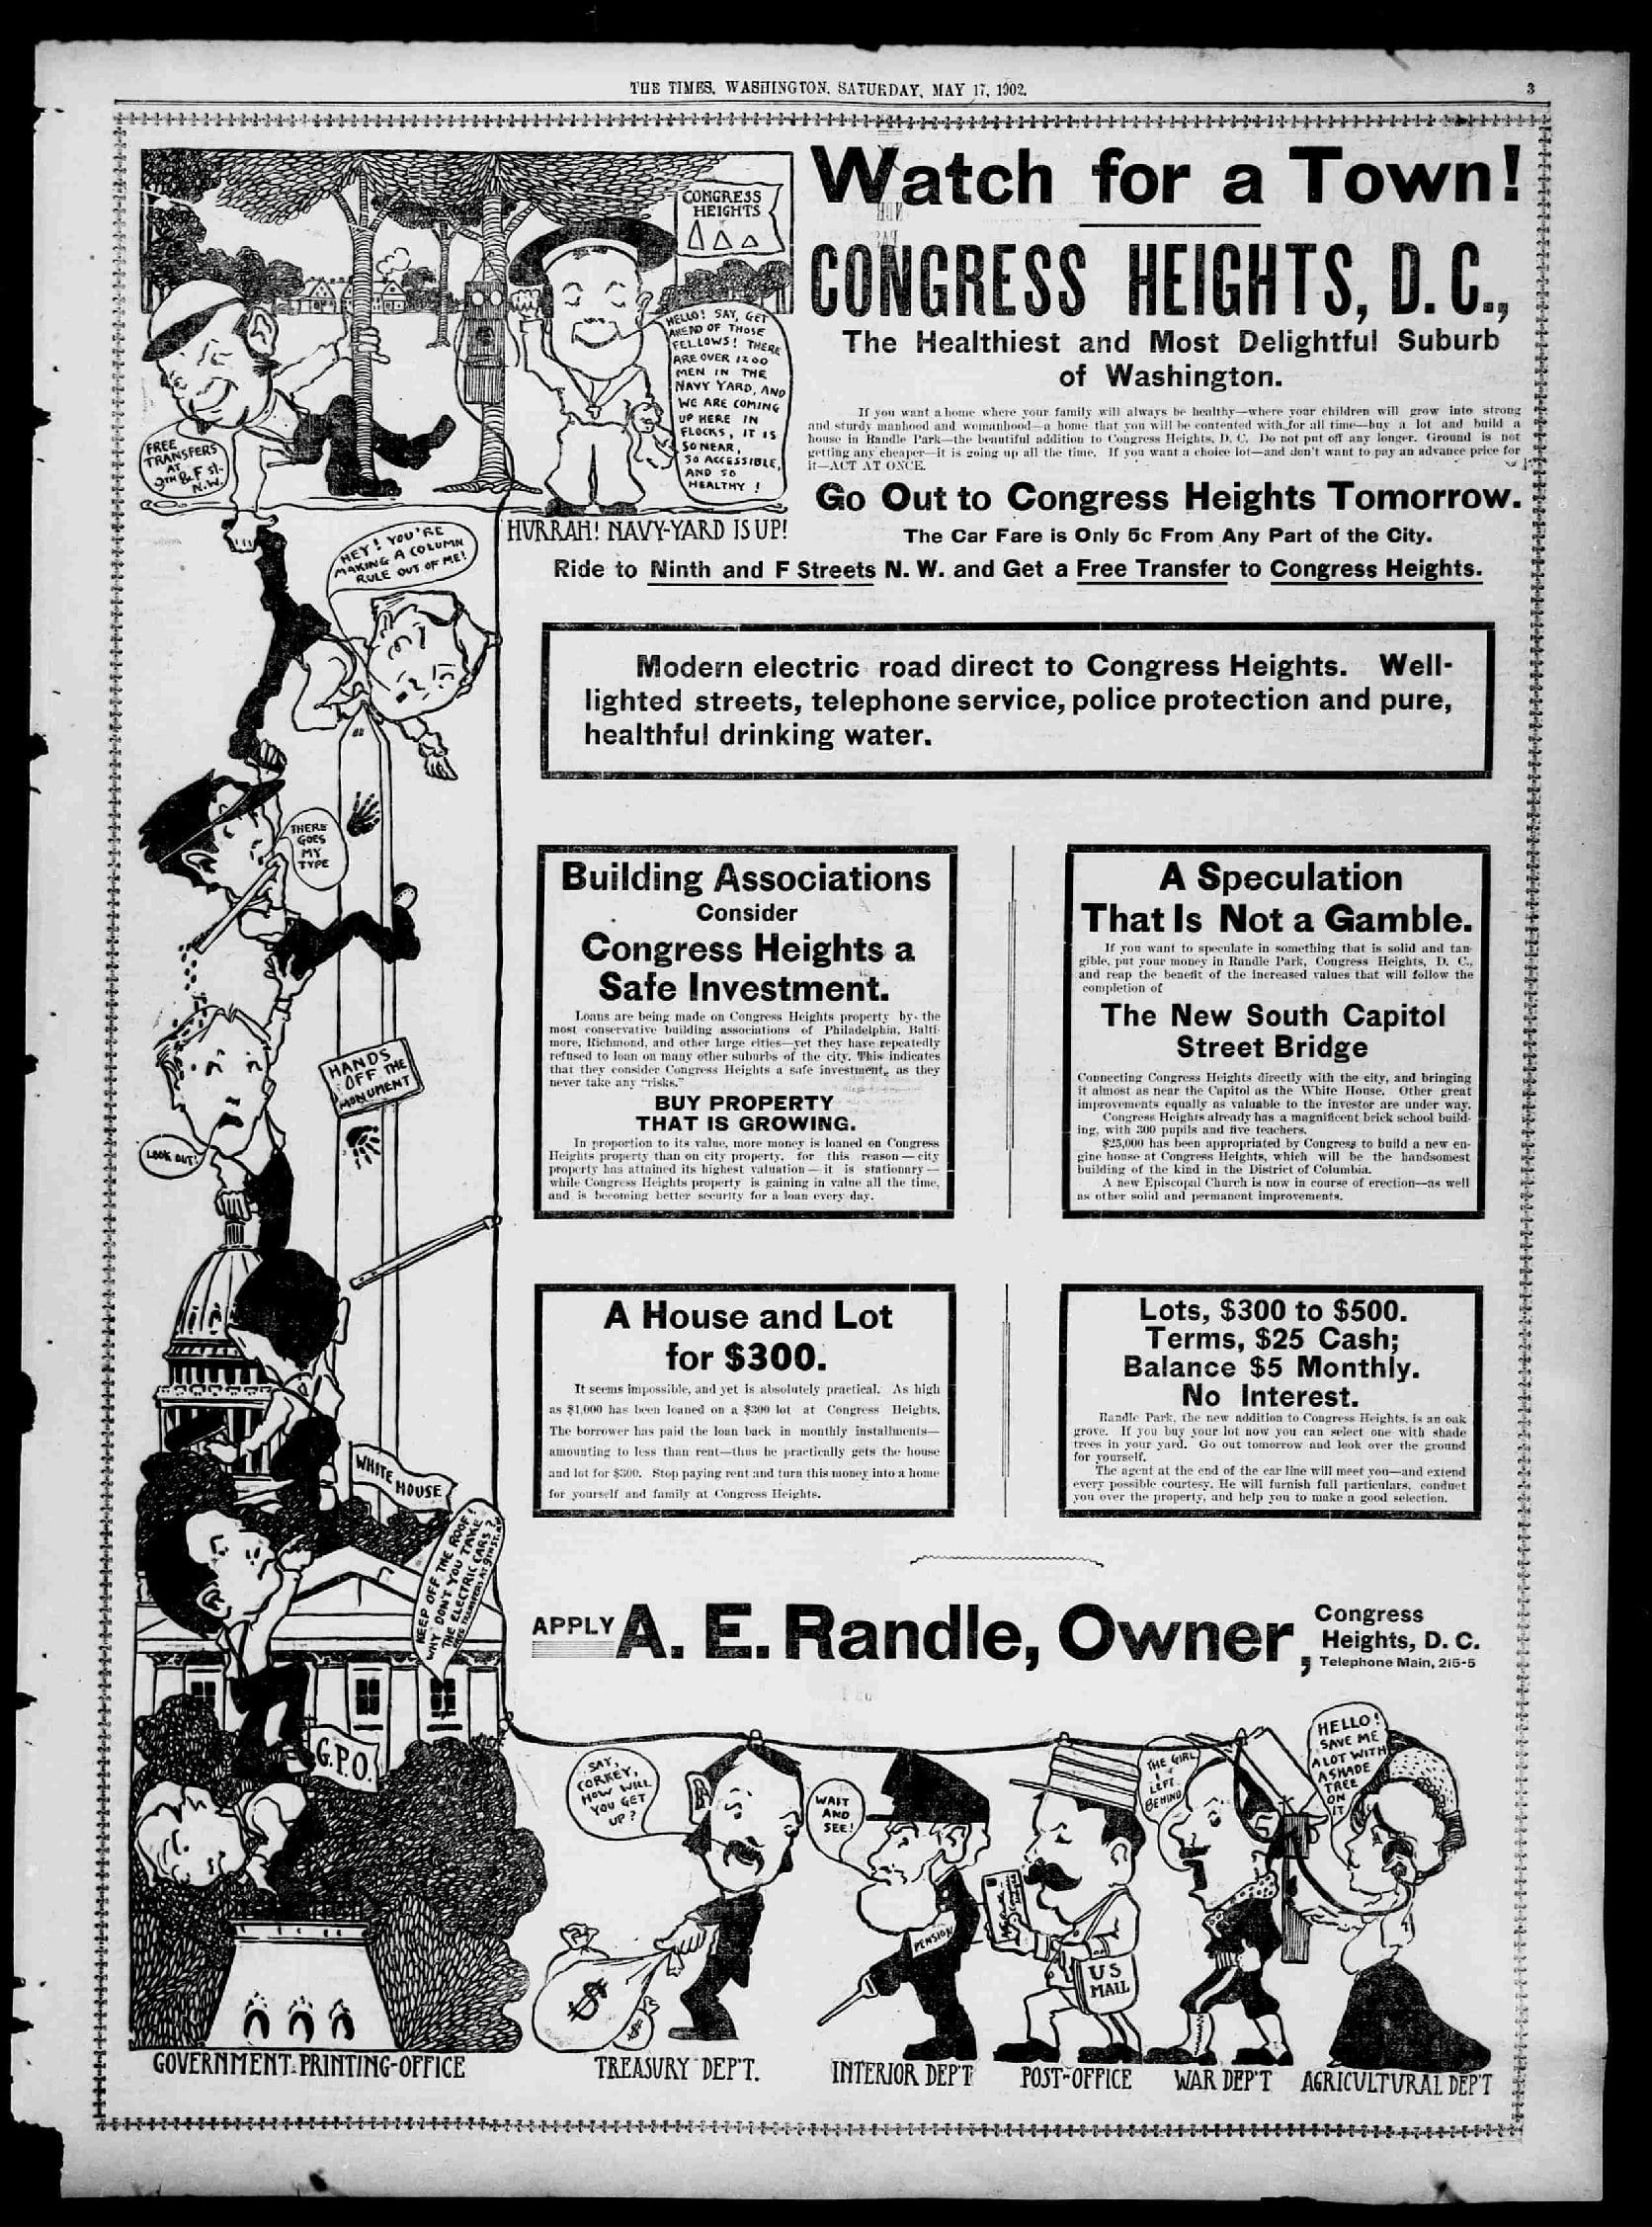 Congress Heights advertisement - May 17th, 1902 (Washington Times)